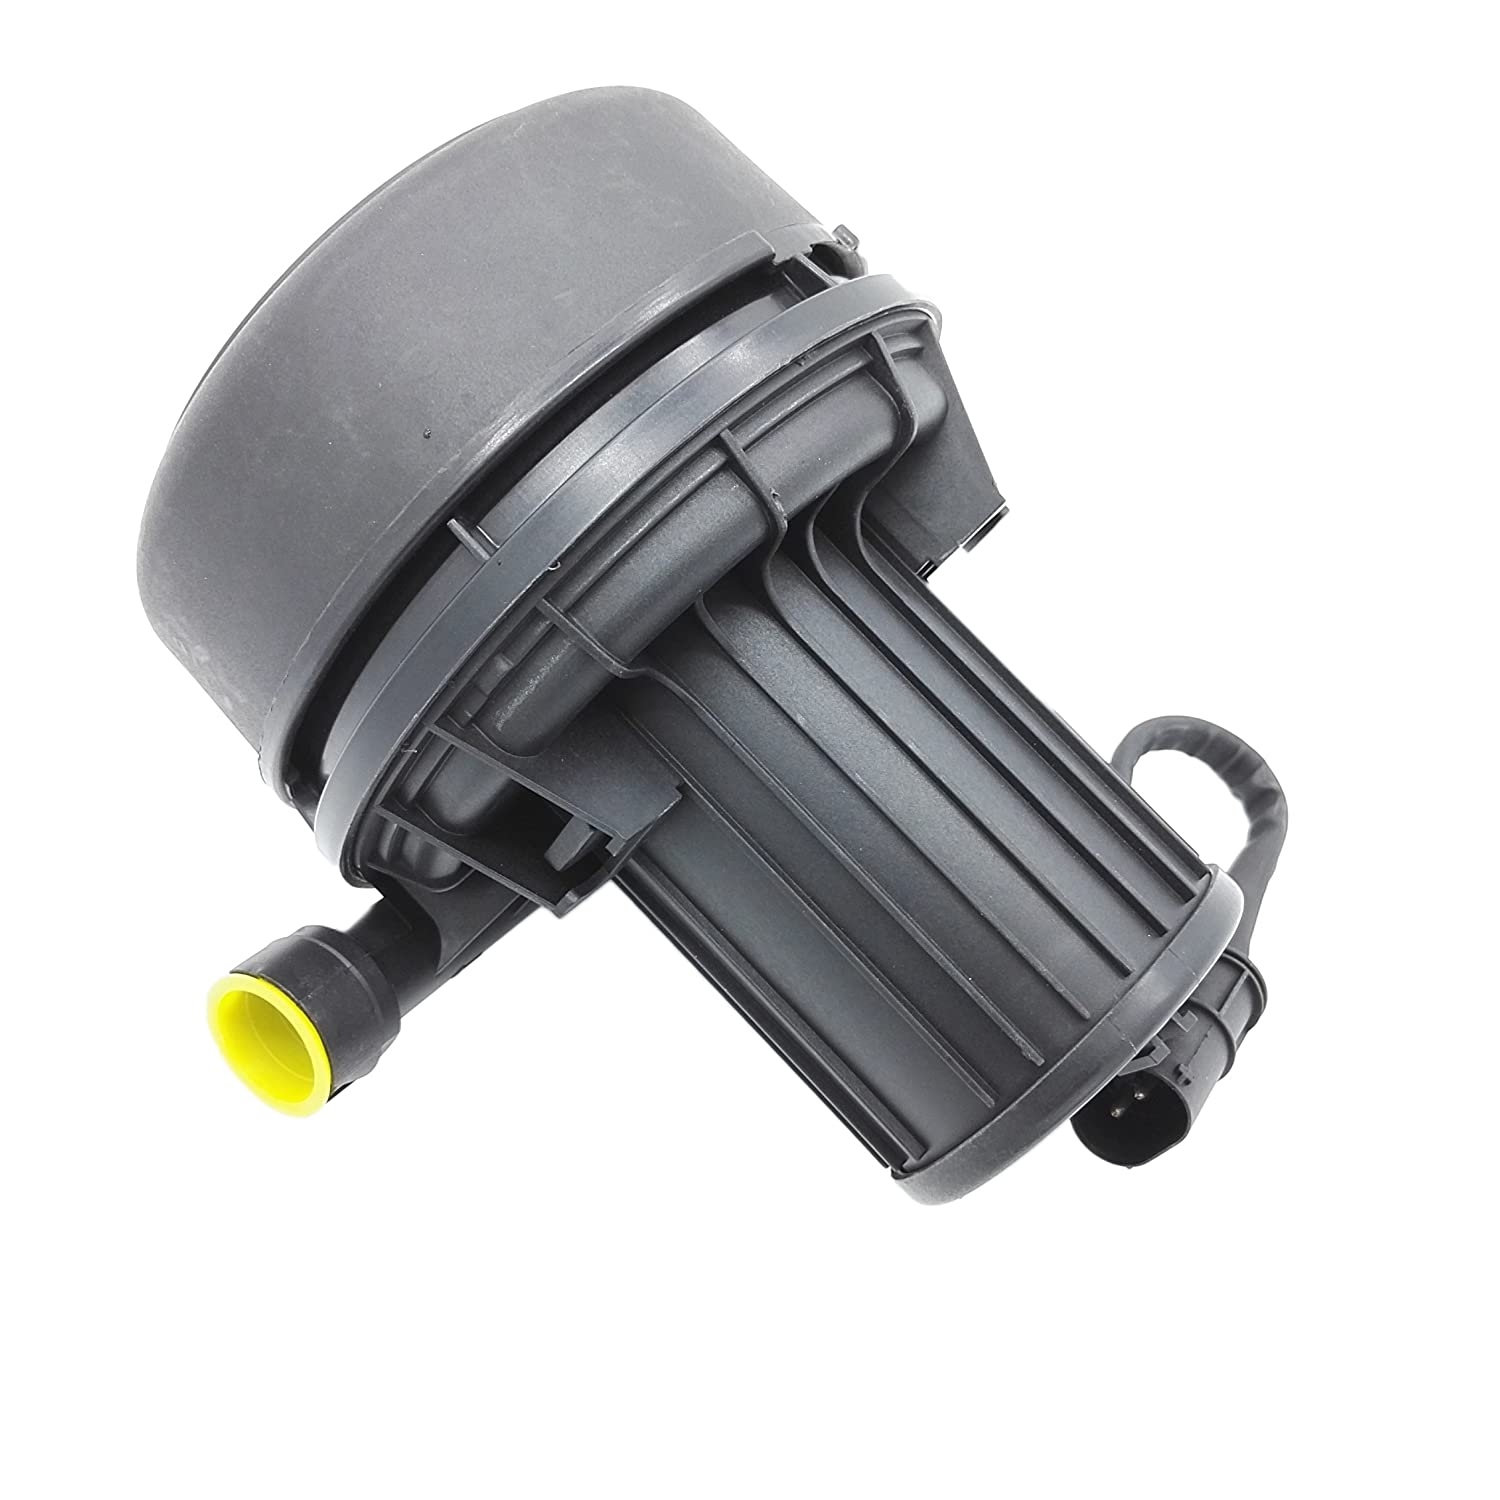 Secondary Air Pump Somg Pump for BMW 2003-2006 E83 X3 E85 Z4 11727514953 Yupin Auto Parts Co.; Ltd. 11727571591